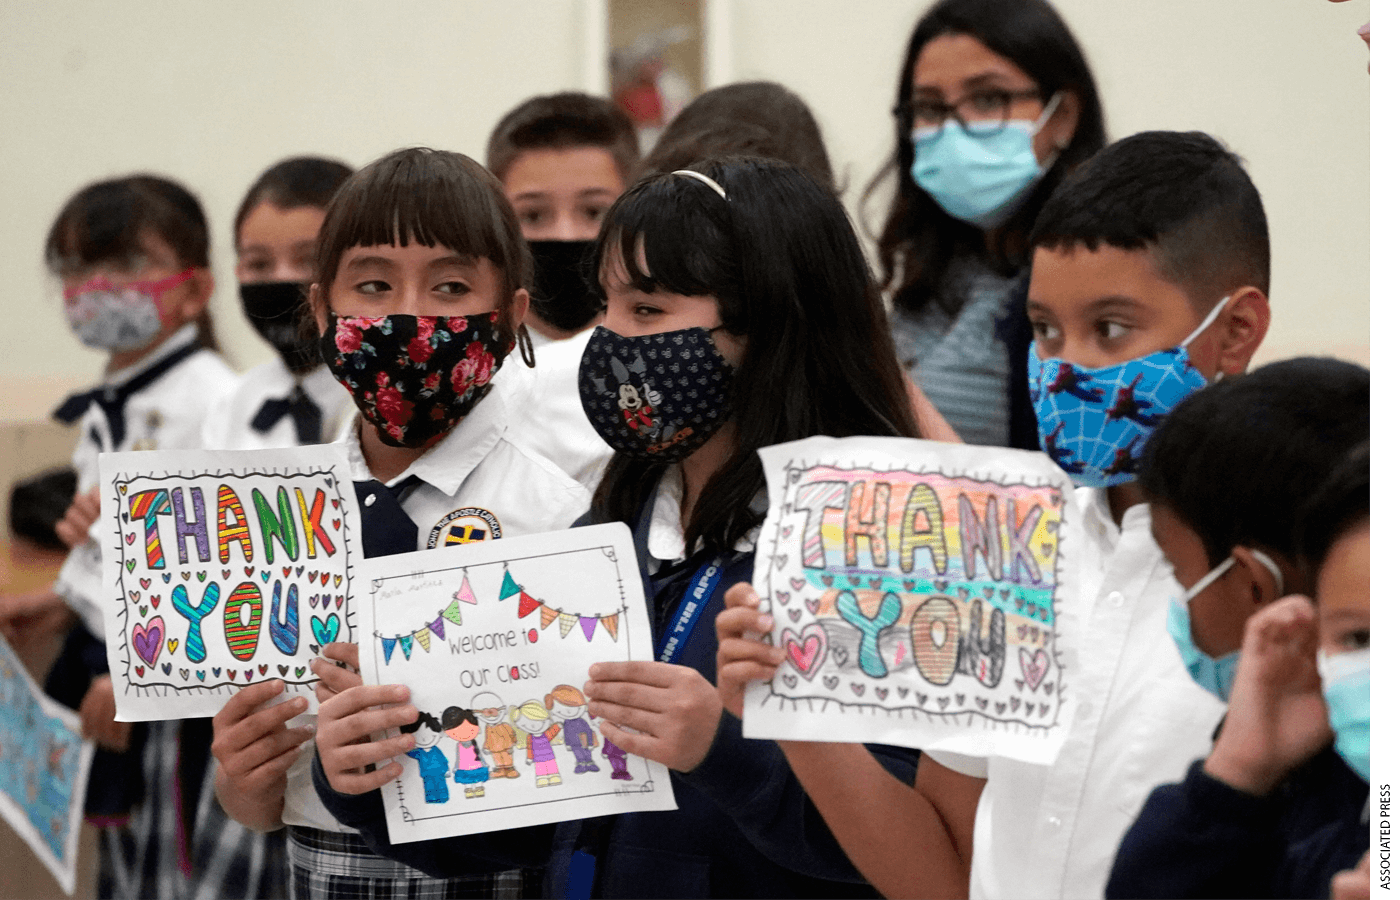 Children wait for Florida Governor Ron DeSantis to arrive at a bill signing ceremony at St. John the Apostle School, Tuesday, May 11, 2021, in Hialeah, Fla.